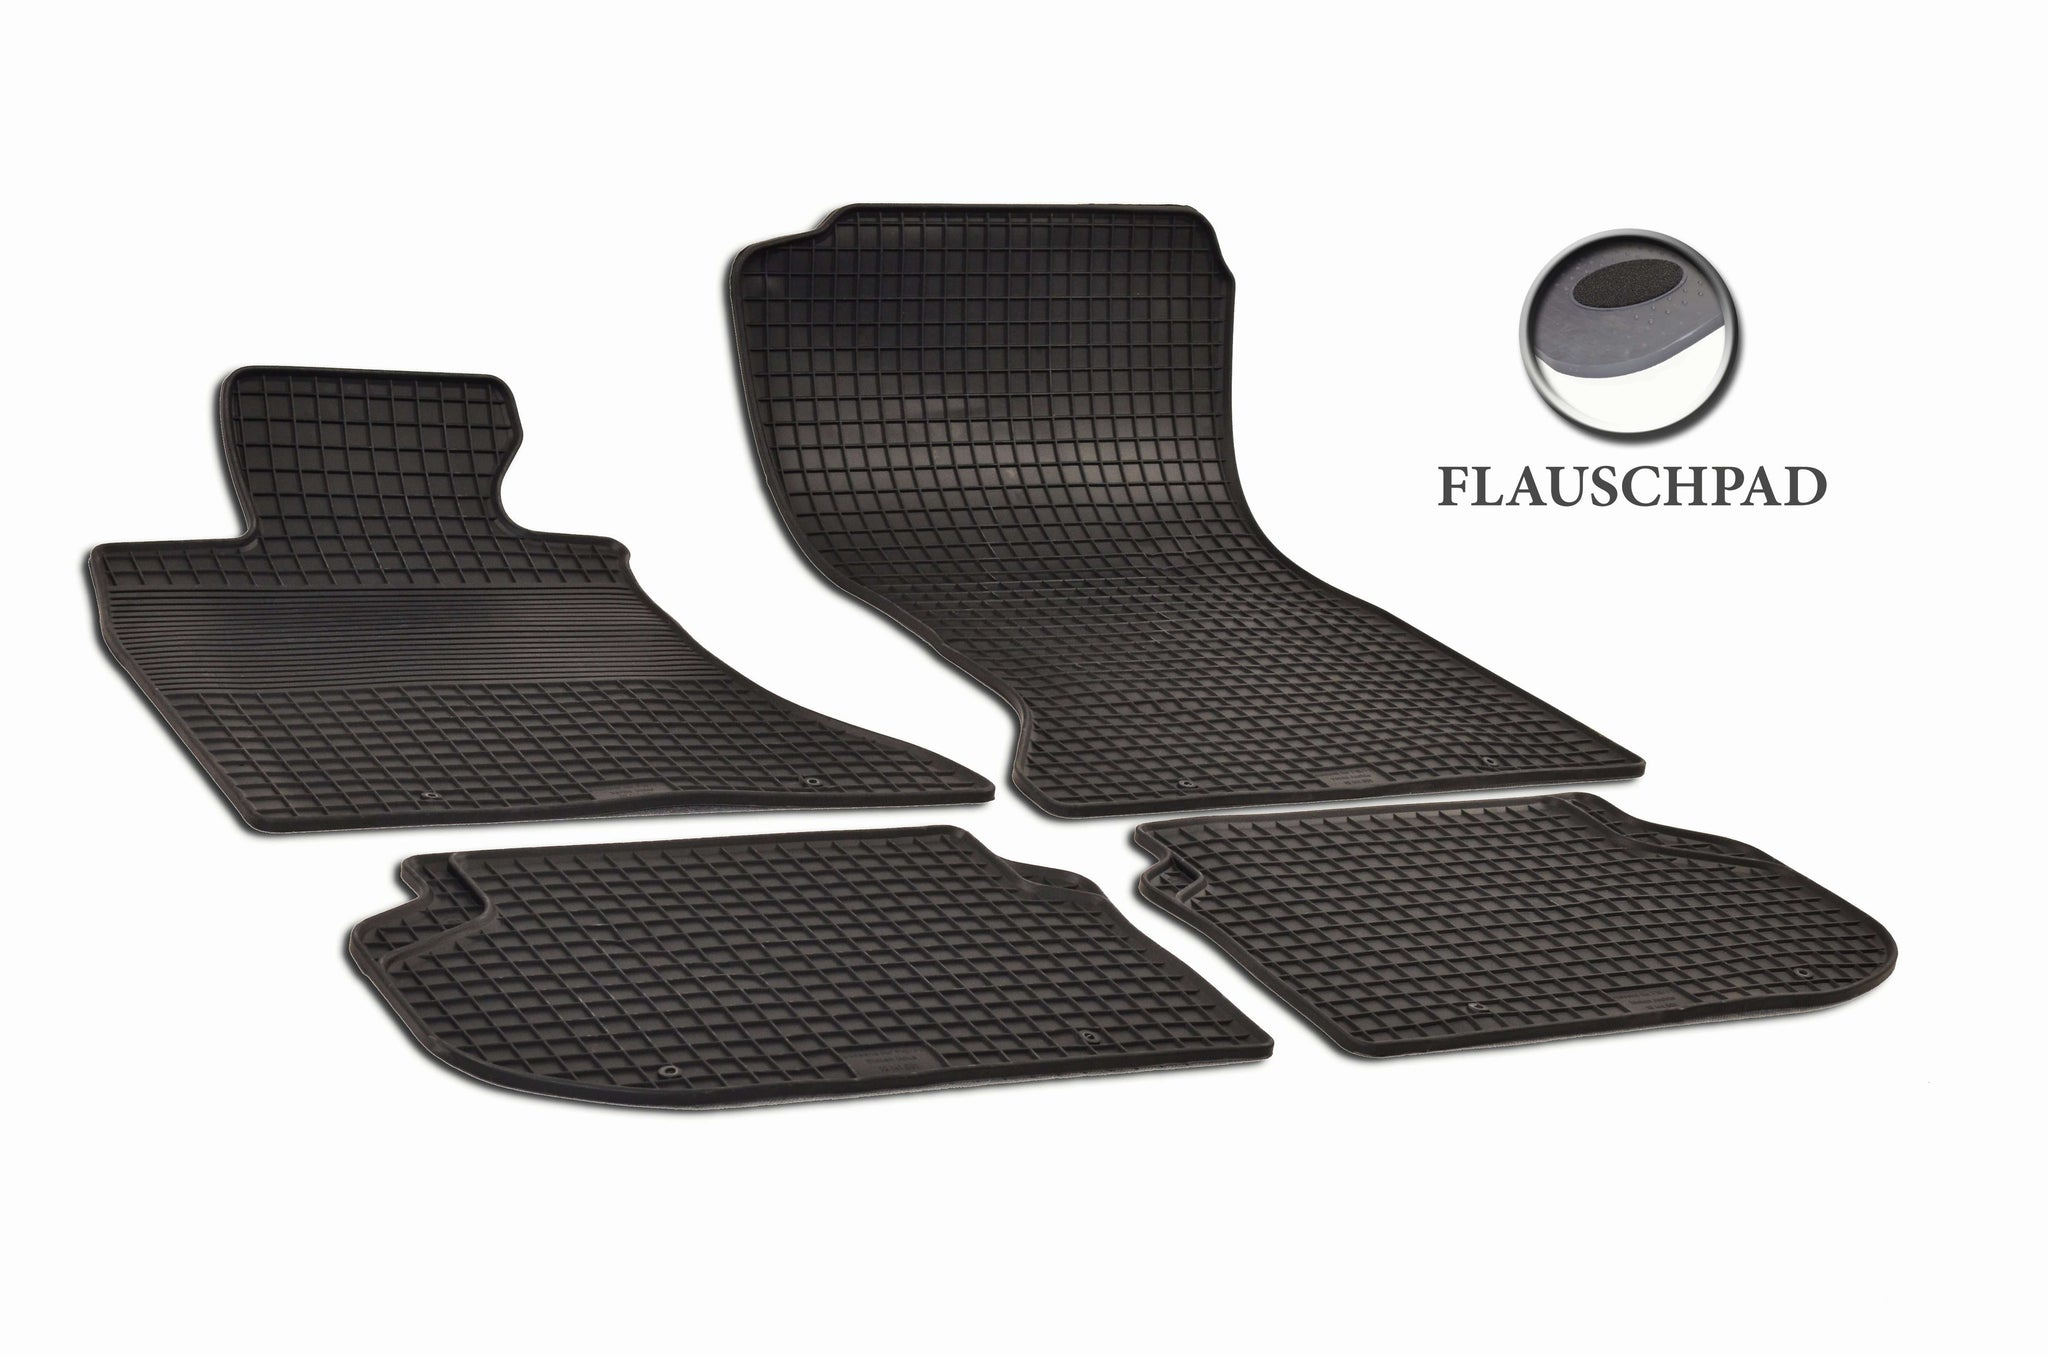 BMW 528i 2013 F10 Sedan Set of 4 Black Rubber OE Fit All Weather Car Floor Mats